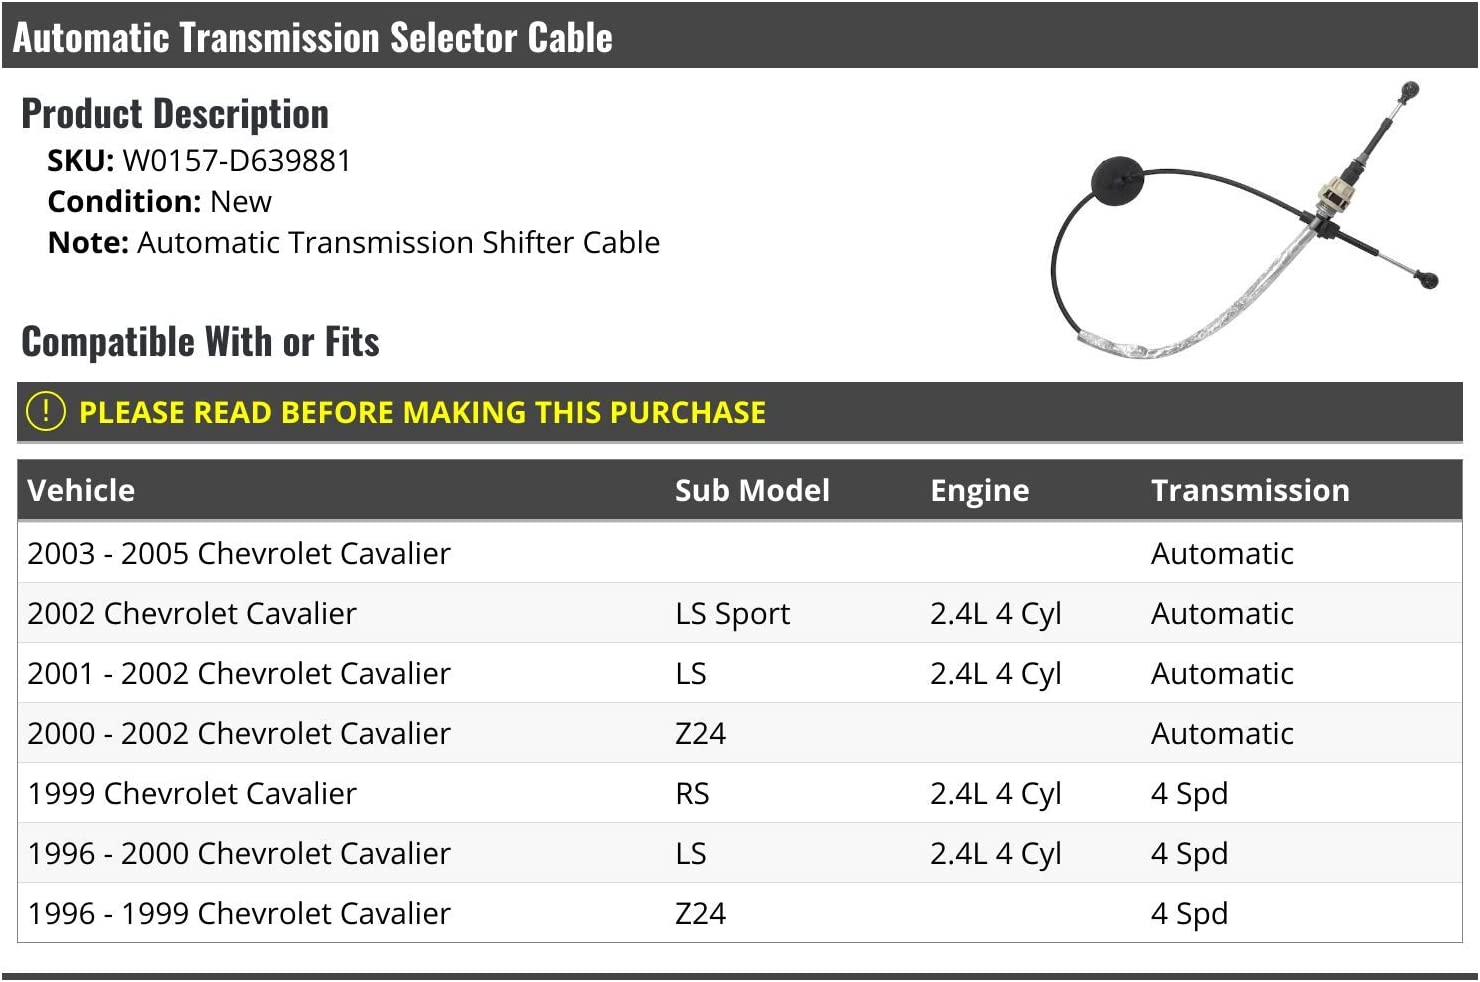 Compatible with 1996-2005 Chevy Cavalier 2.4L 4-Cylinder Automatic Transmission Selector Cable